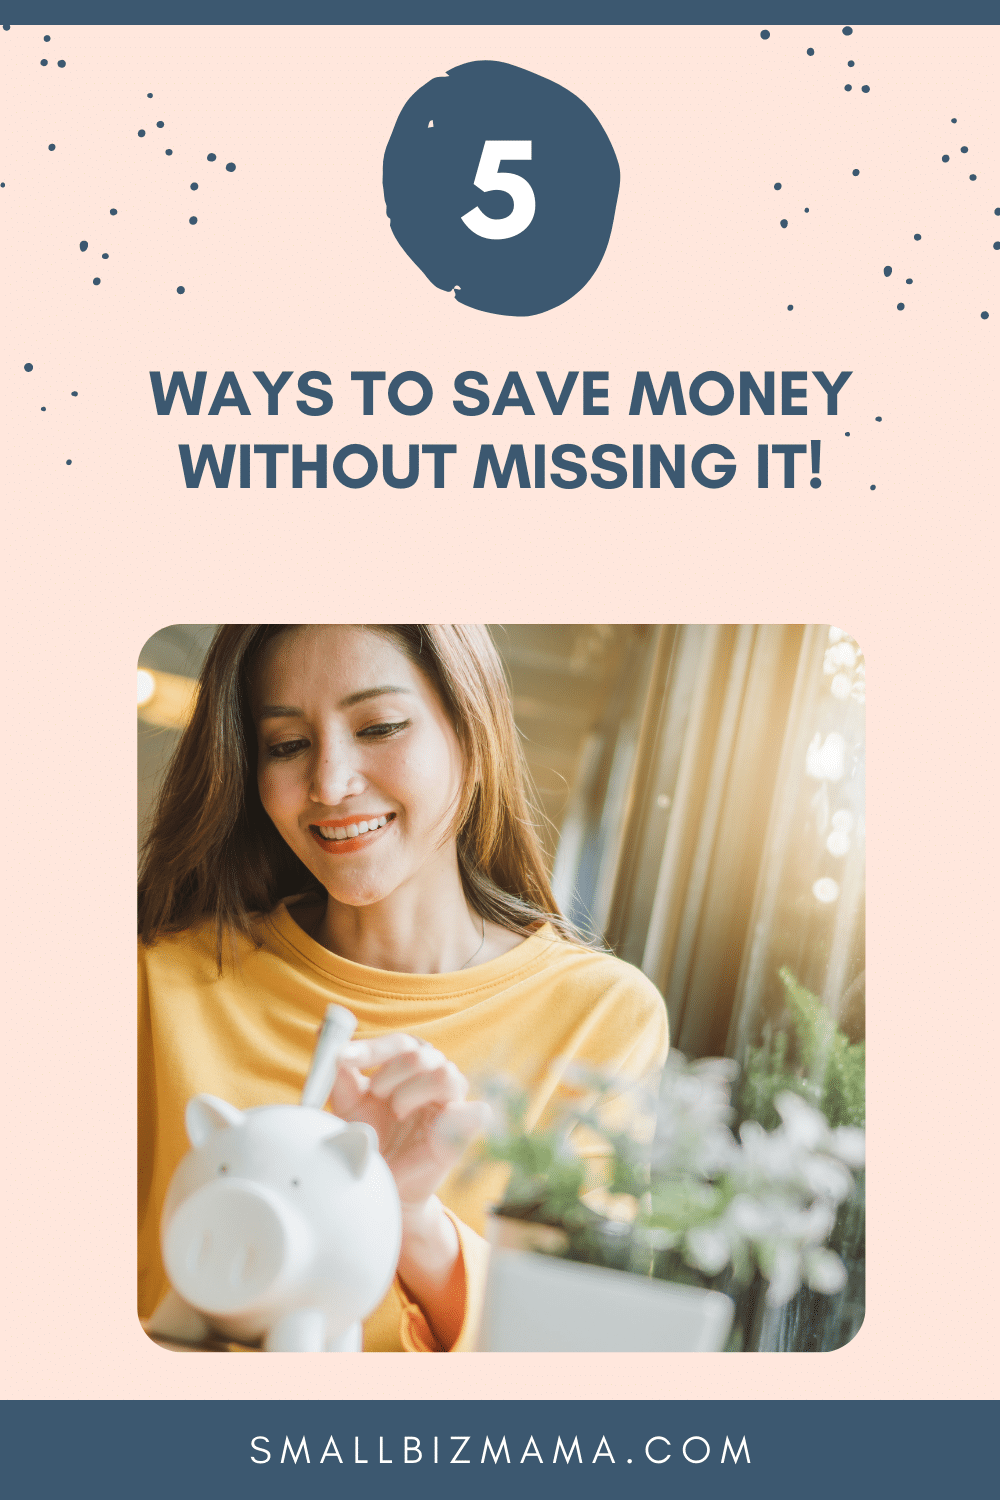 Five ways to save money without missing it